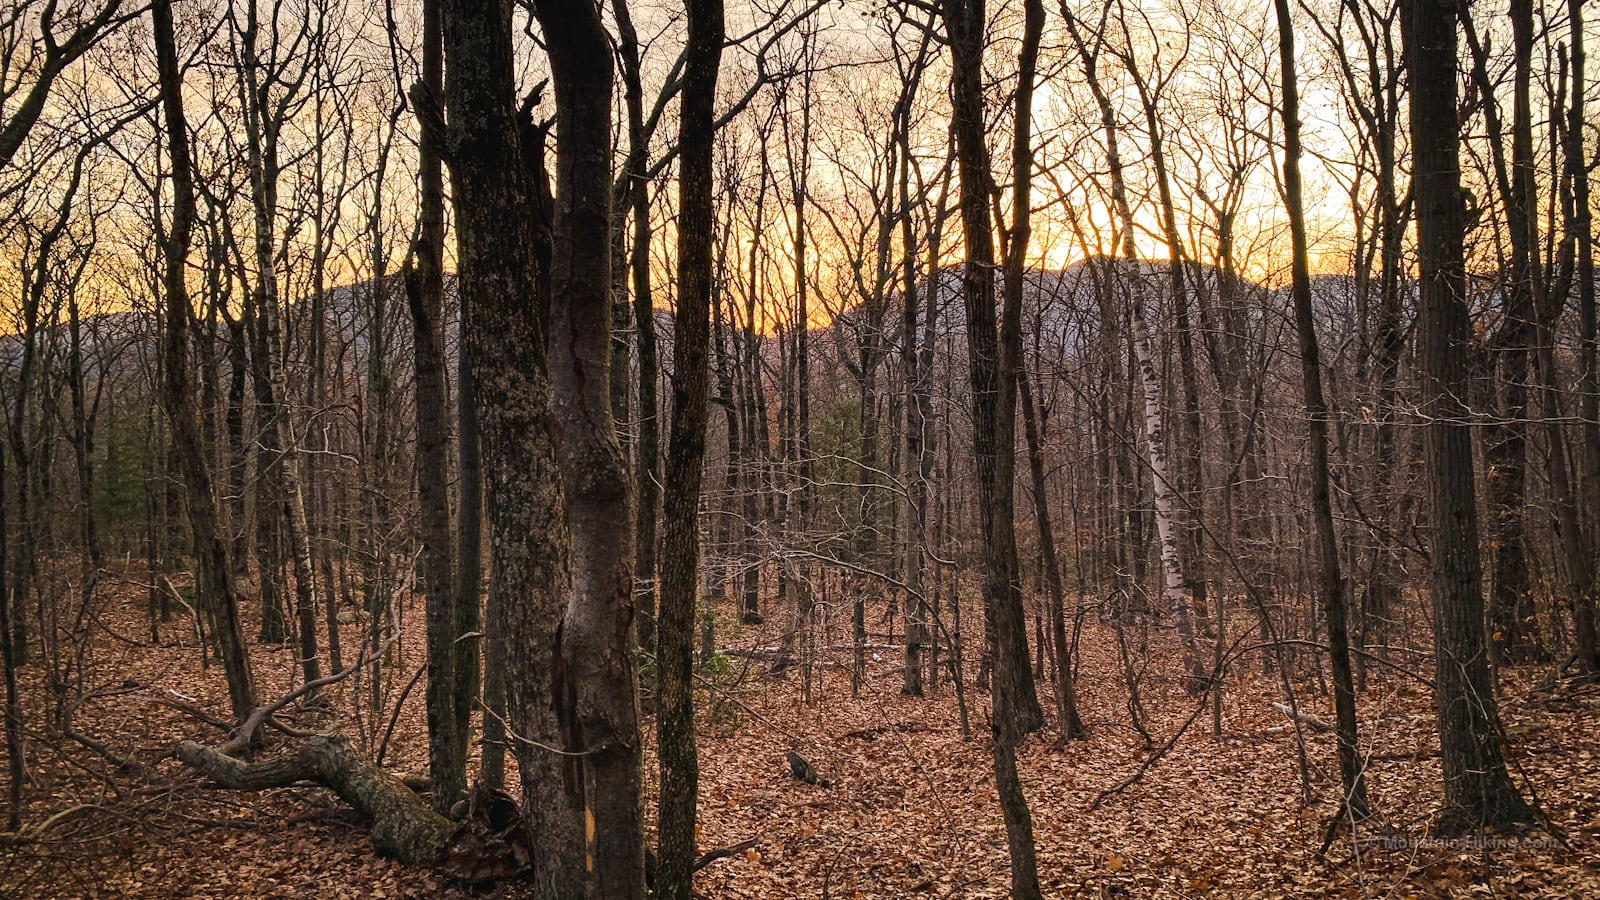 Huckleberry Point Trail: screened sundown view of mountains through trees